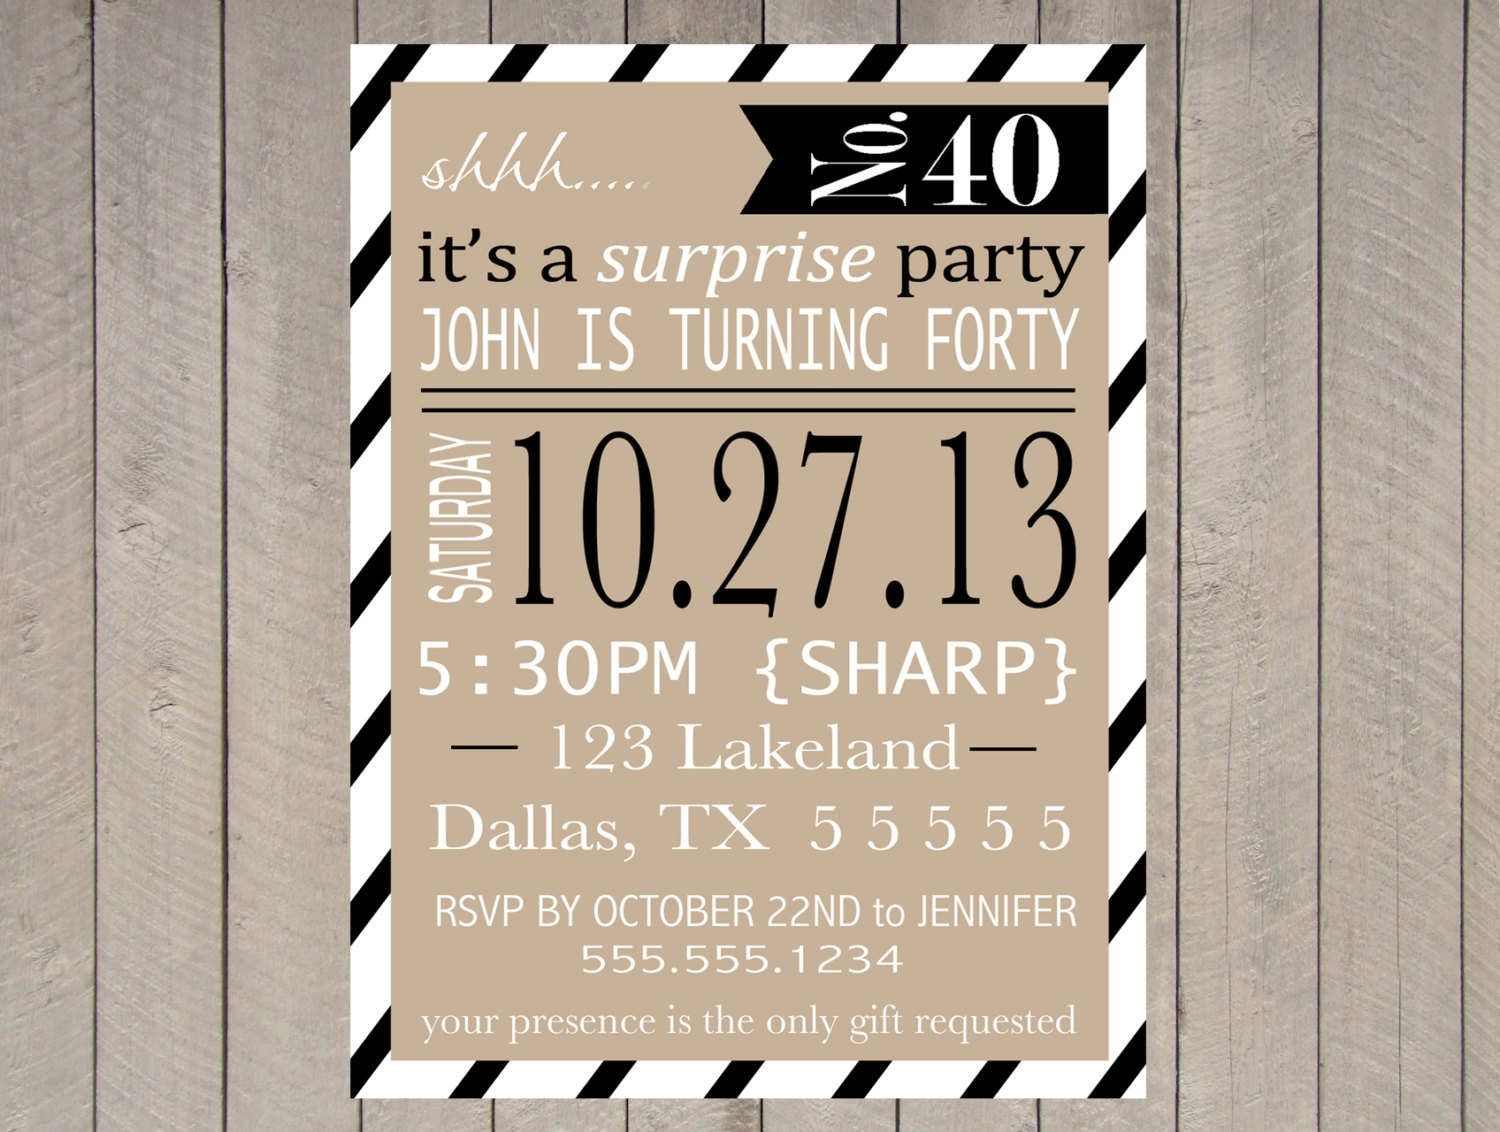 Free Printable Surprise Party Invitation Templates | Invitations In - Free Printable Surprise 40Th Birthday Party Invitations